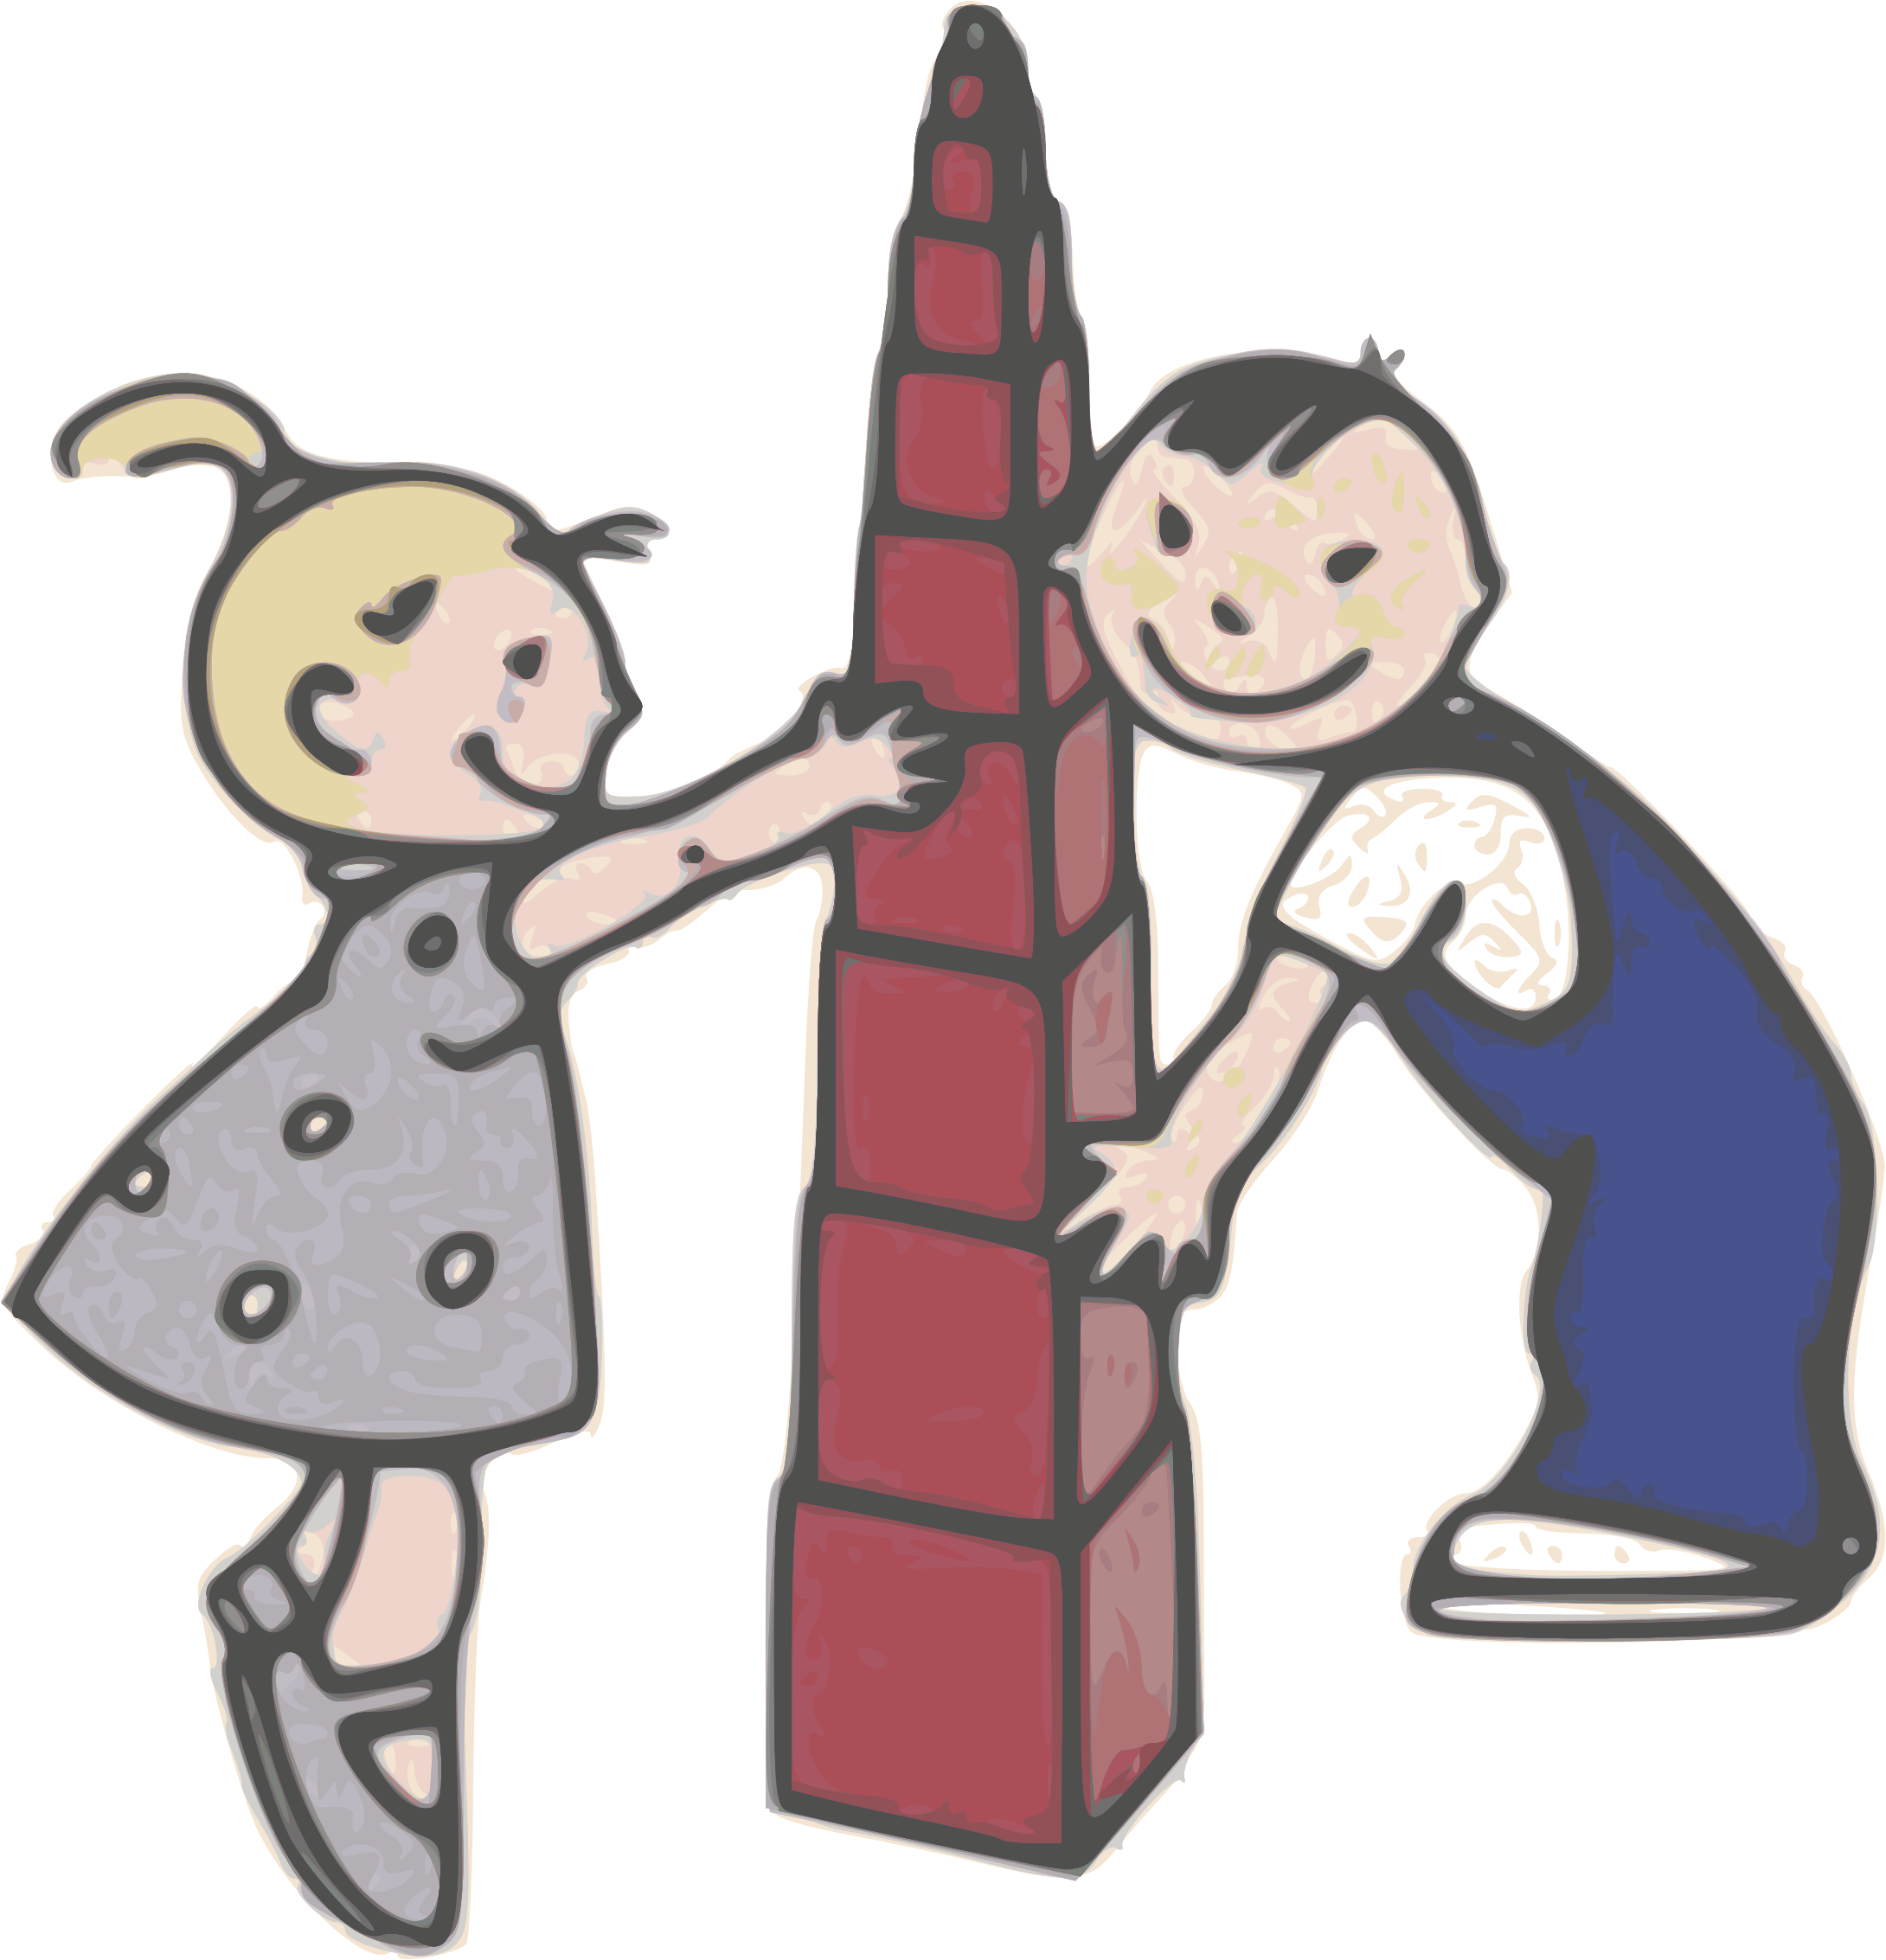 library Play with tower giancarlo. Clipart kids playing